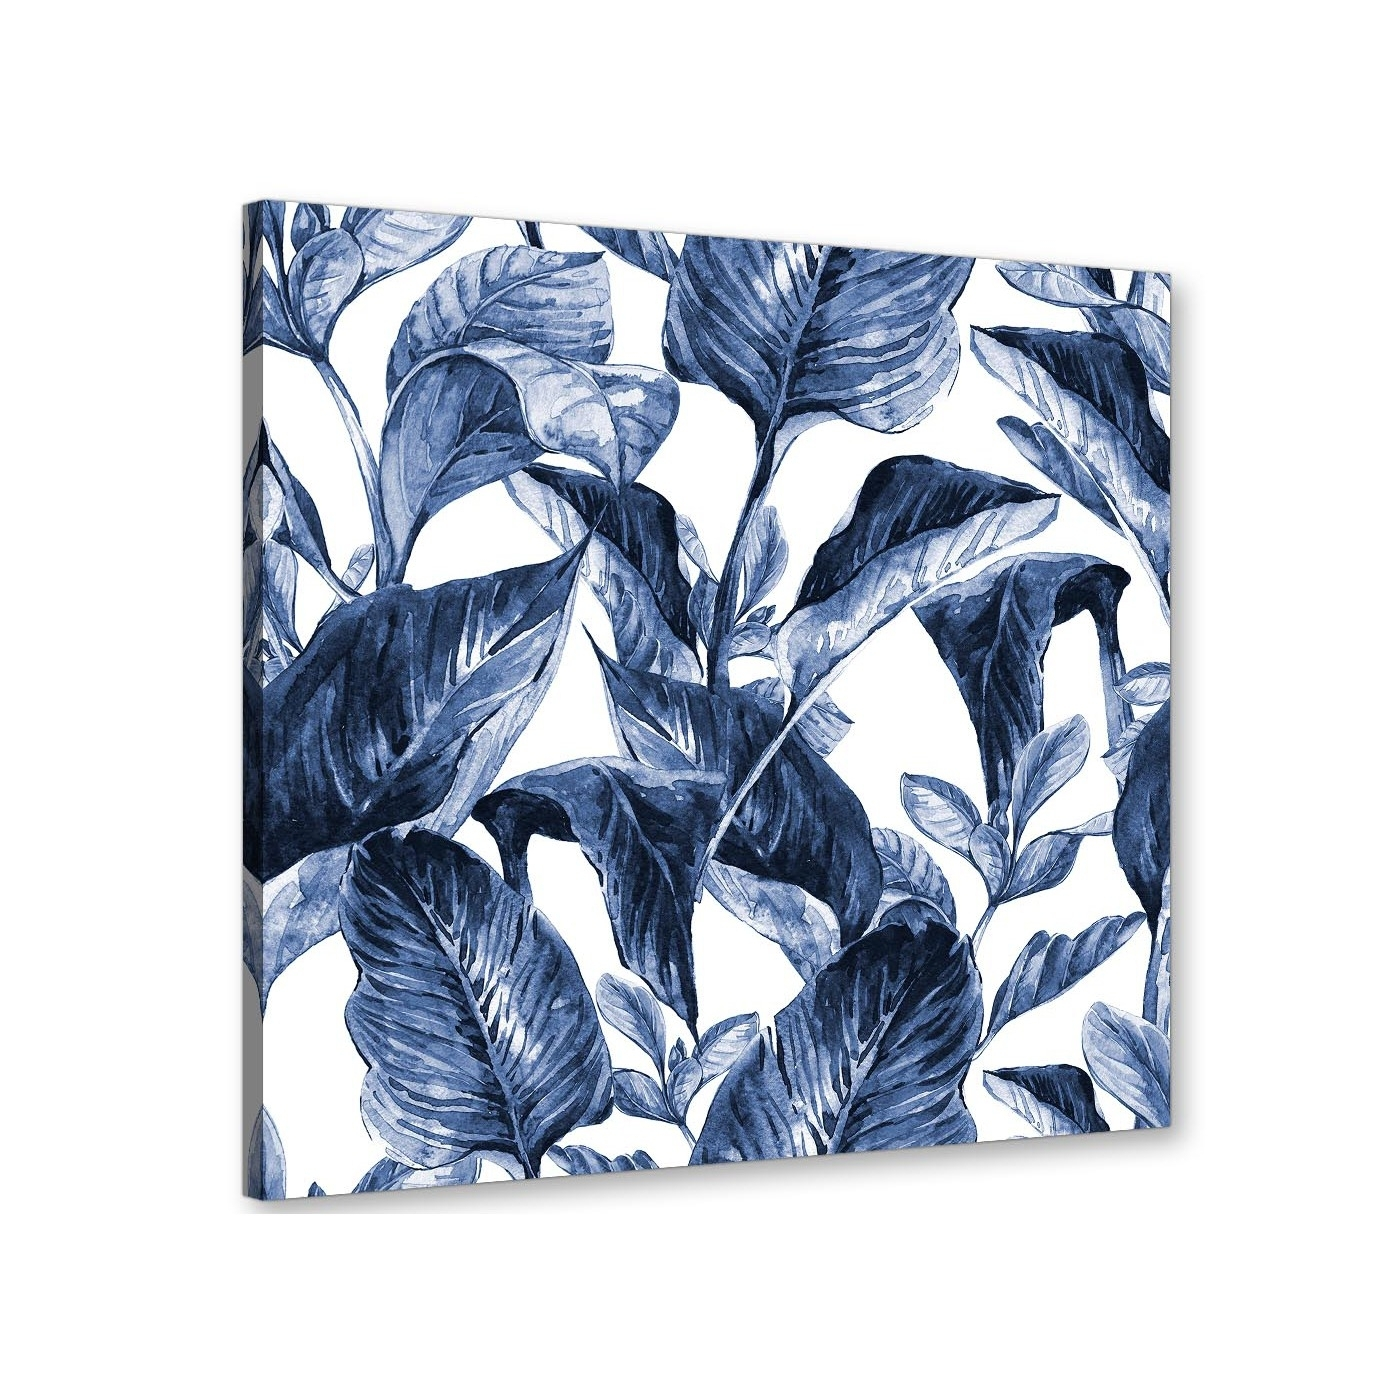 Indigo Navy Blue White Tropical Leaves Canvas Wall Art – Modern With Regard To Most Recently Released Navy Canvas Wall Art (View 6 of 15)